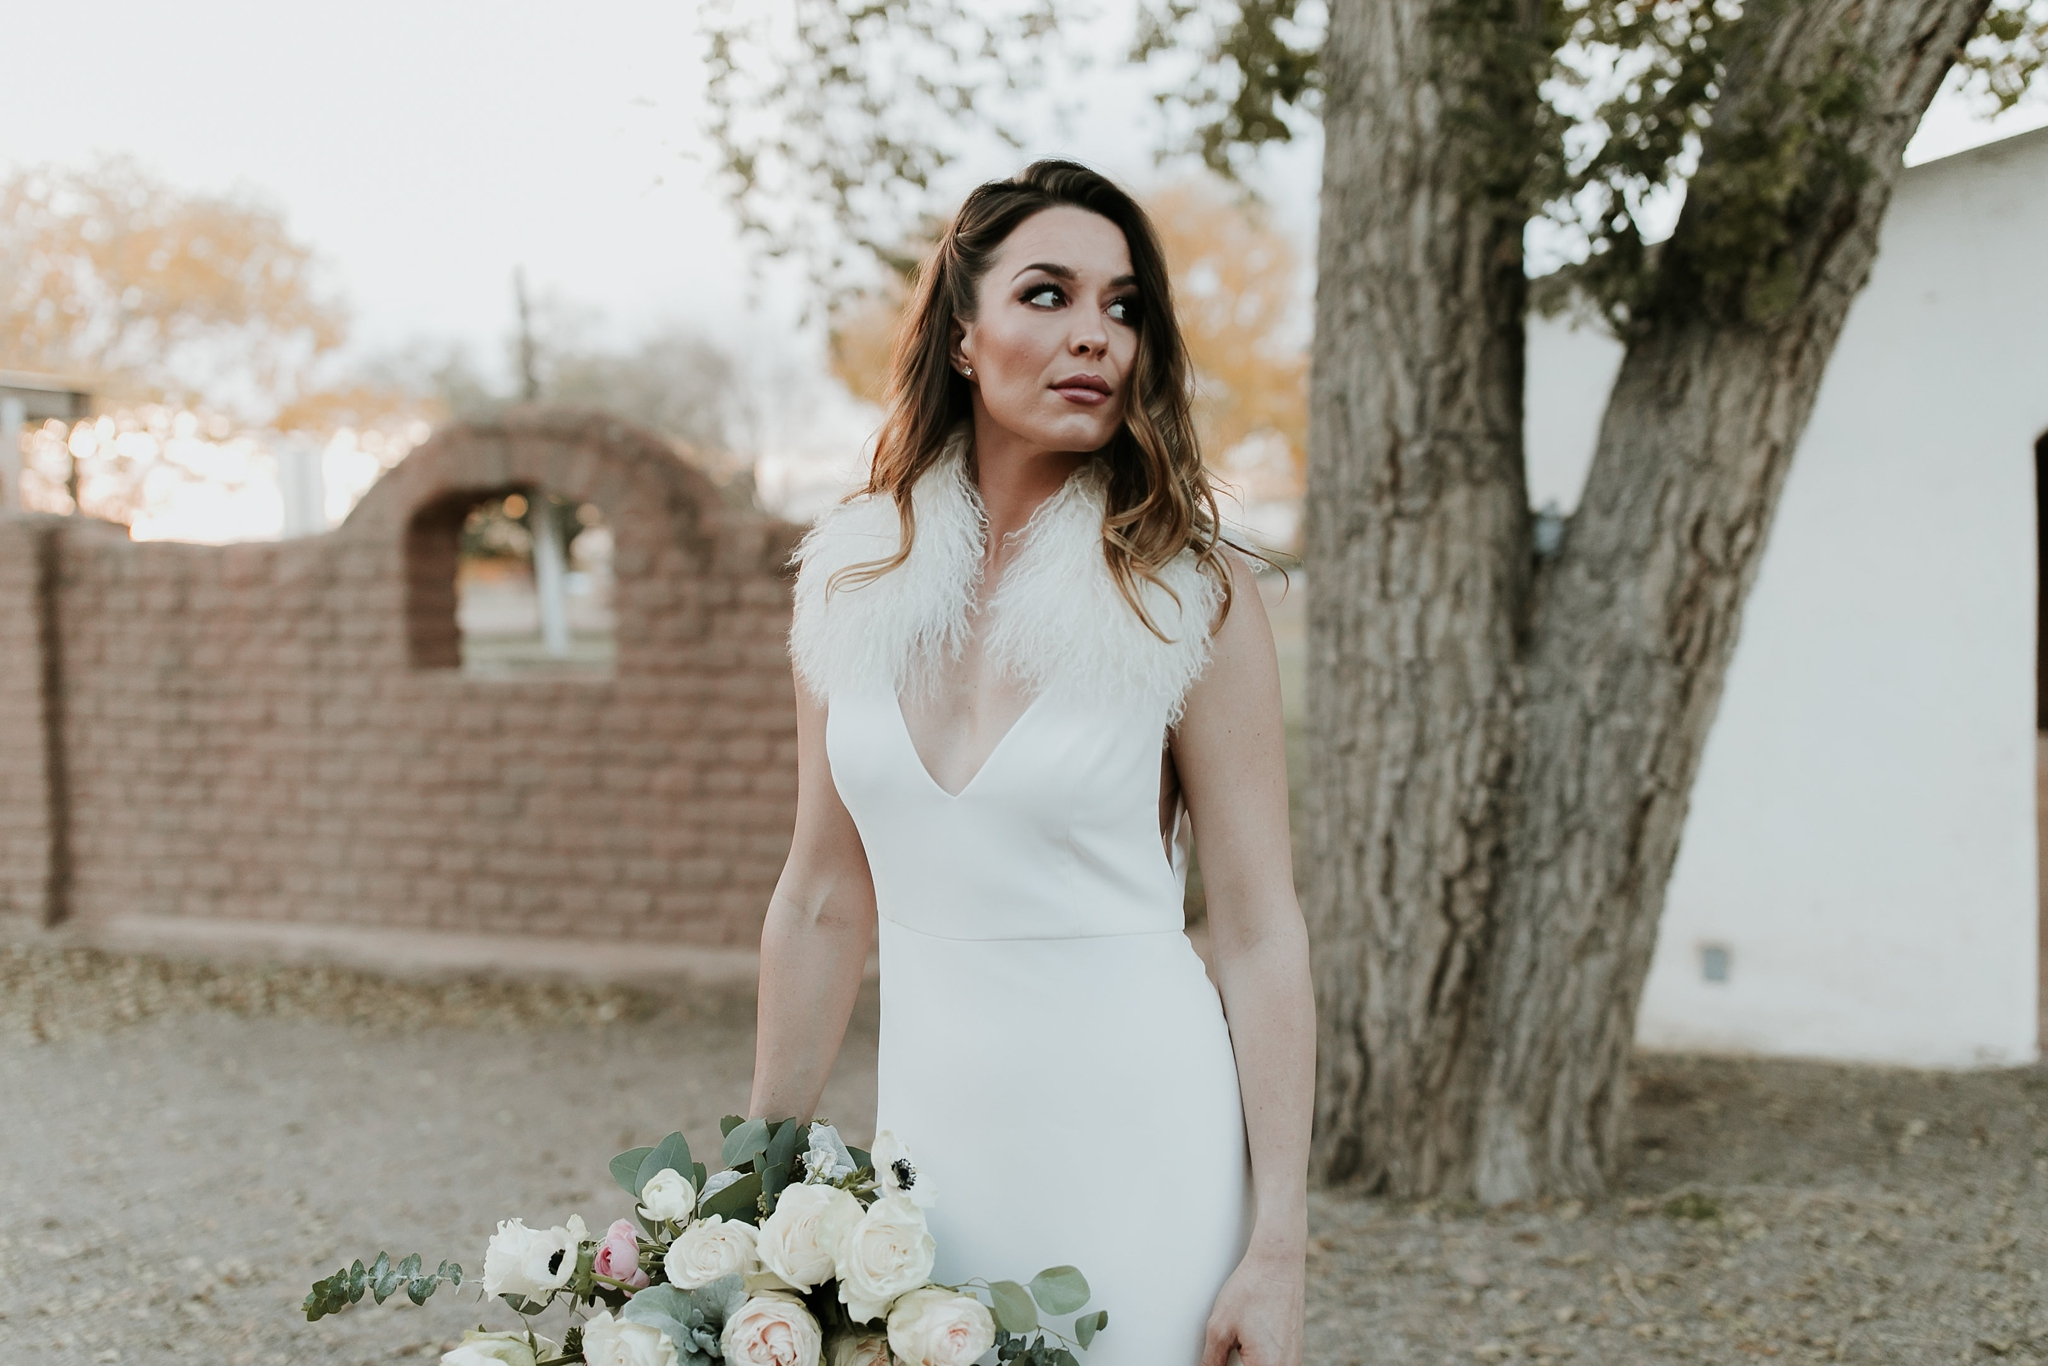 Alicia+lucia+photography+-+albuquerque+wedding+photographer+-+santa+fe+wedding+photography+-+new+mexico+wedding+photographer+-+bridal+shoot+-+styled+bridal+shoot+-+southwest+bride_0007.jpg